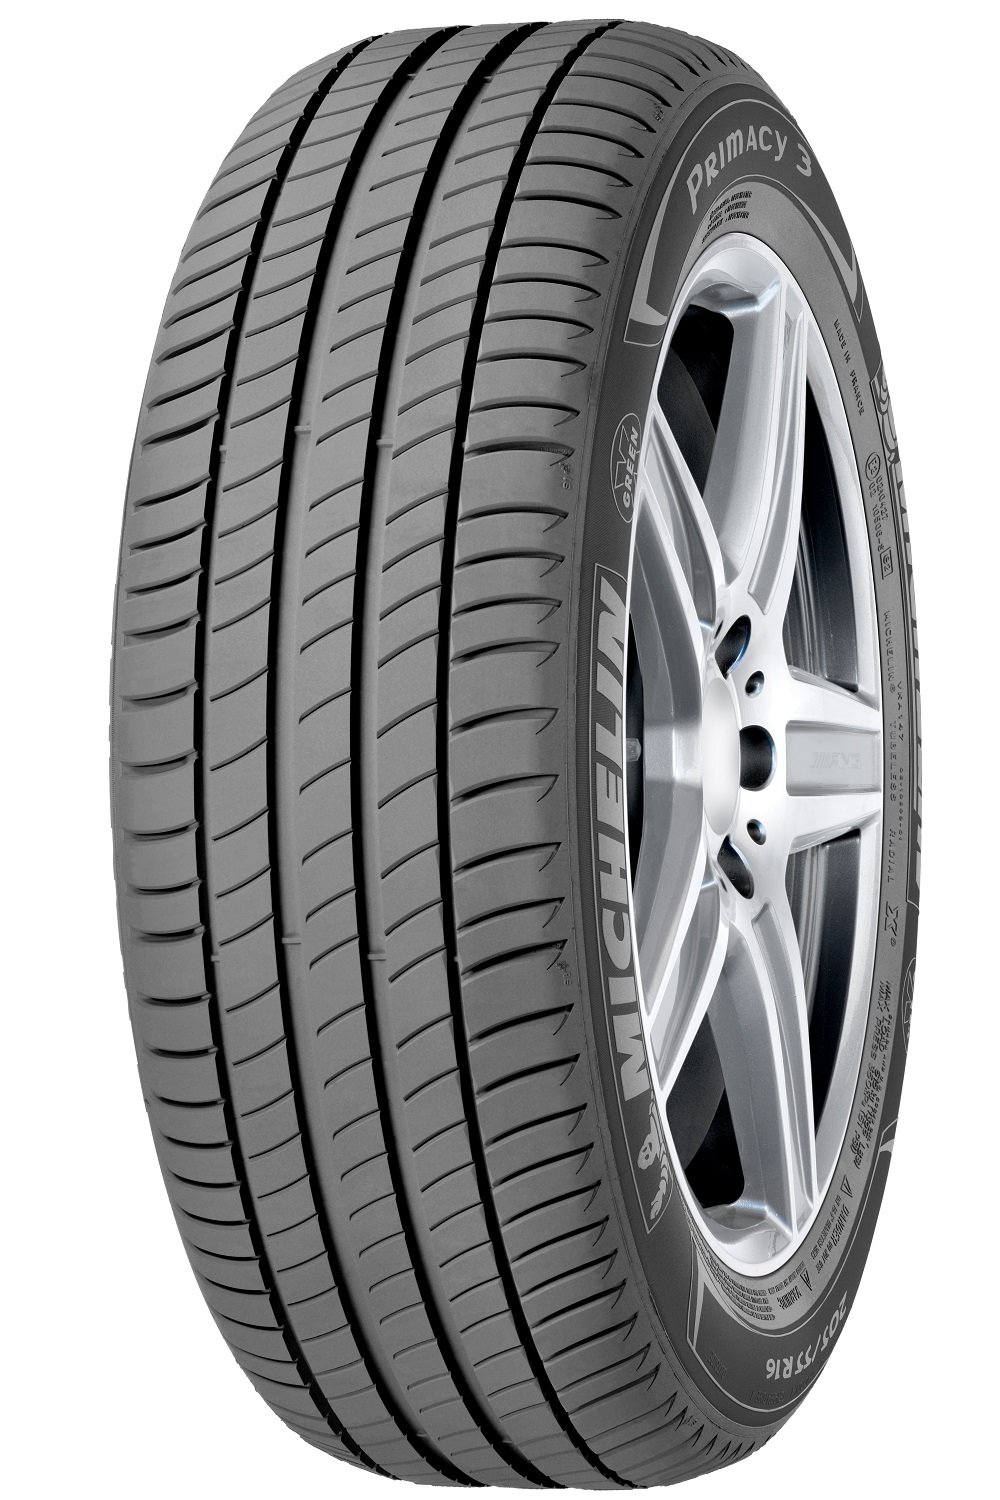 neumatico michelin primacy 3 225 55 16 95 w